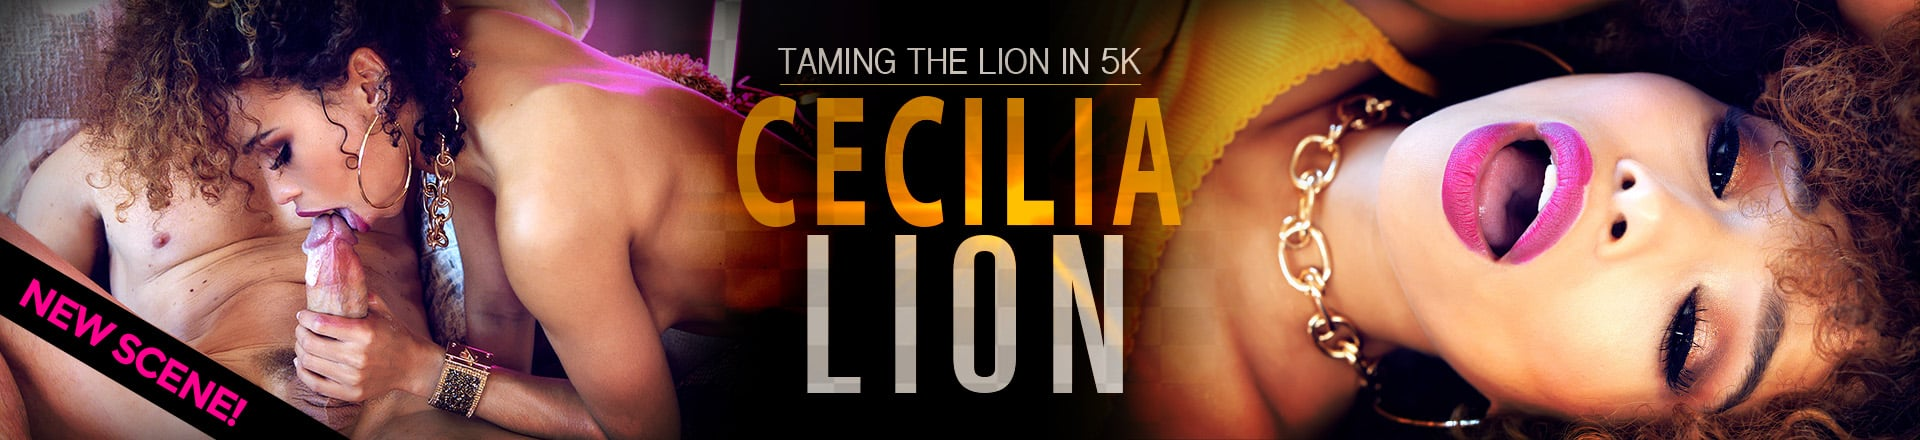 Cecilia Lion in stunning 5K